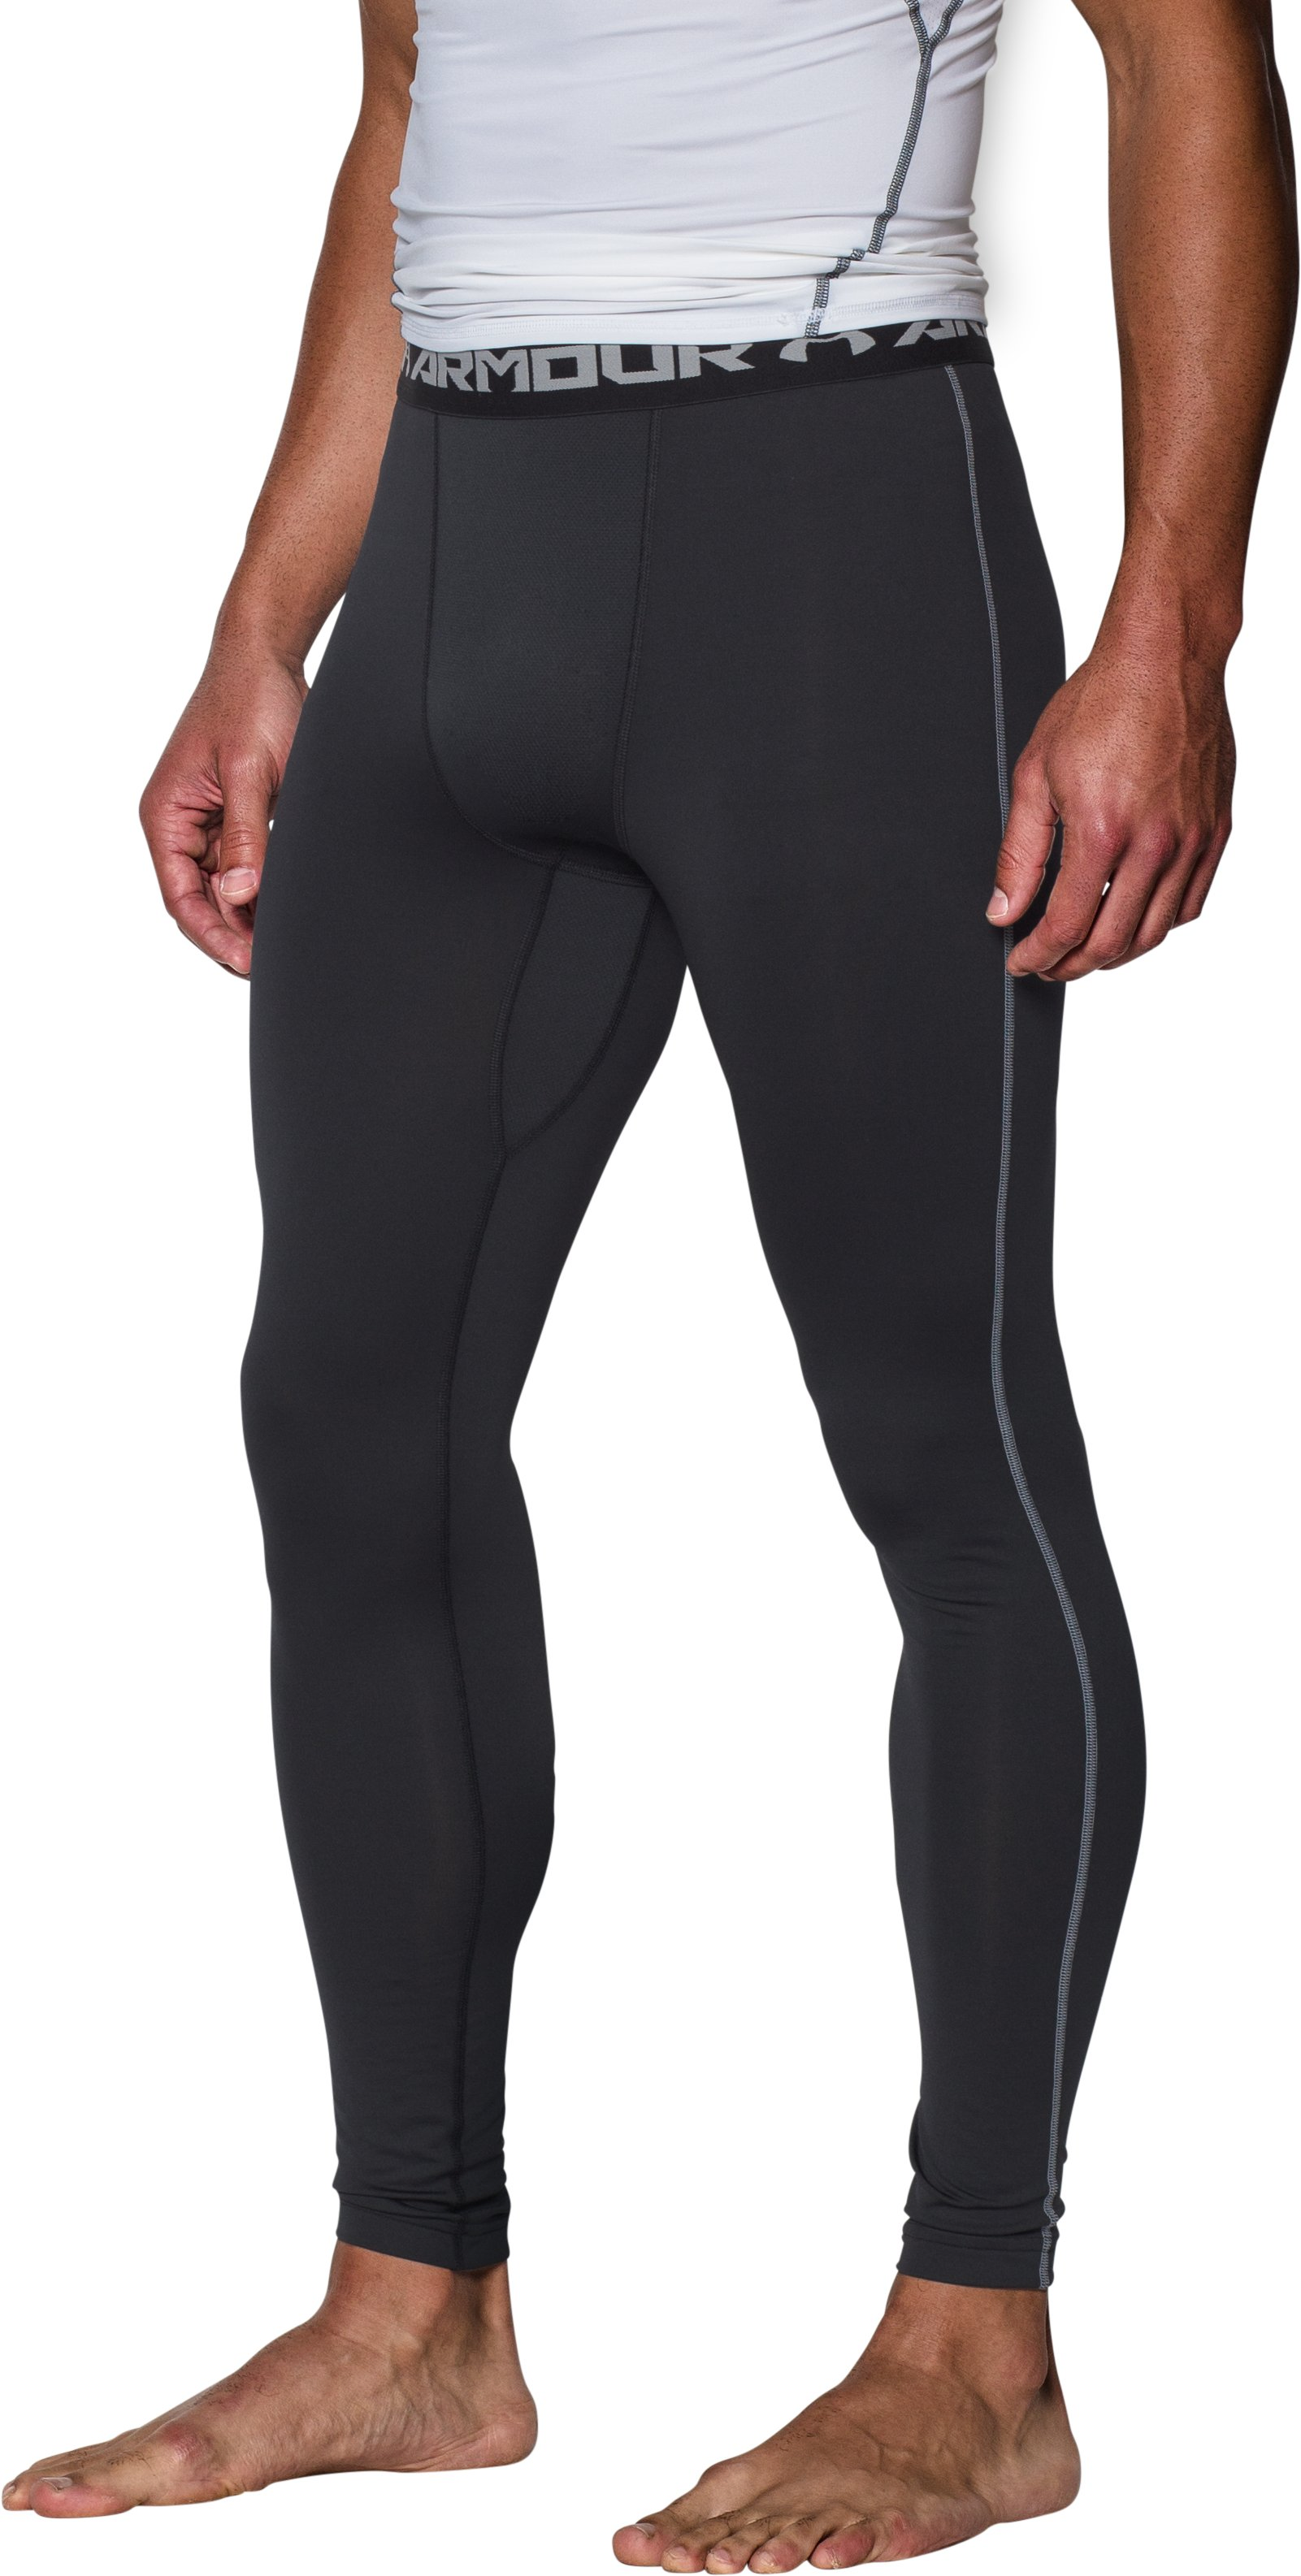 large leggings Men's UA ColdGear® Armour Compression Leggings Thumbs up to <strong>UA</strong> for this product!